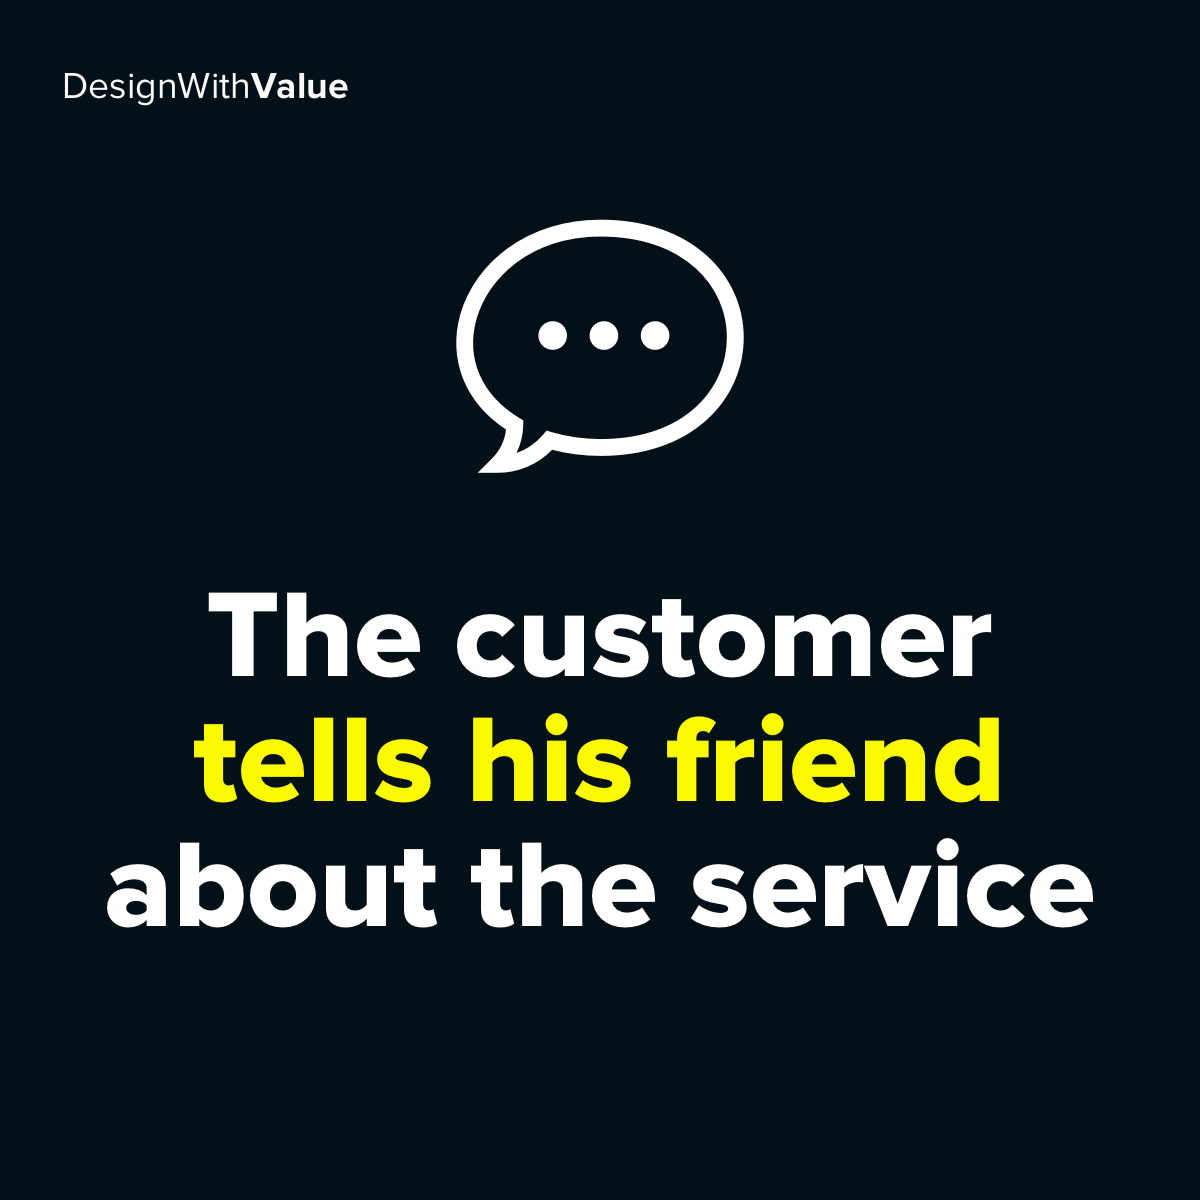 The customer tells his friend about the service.